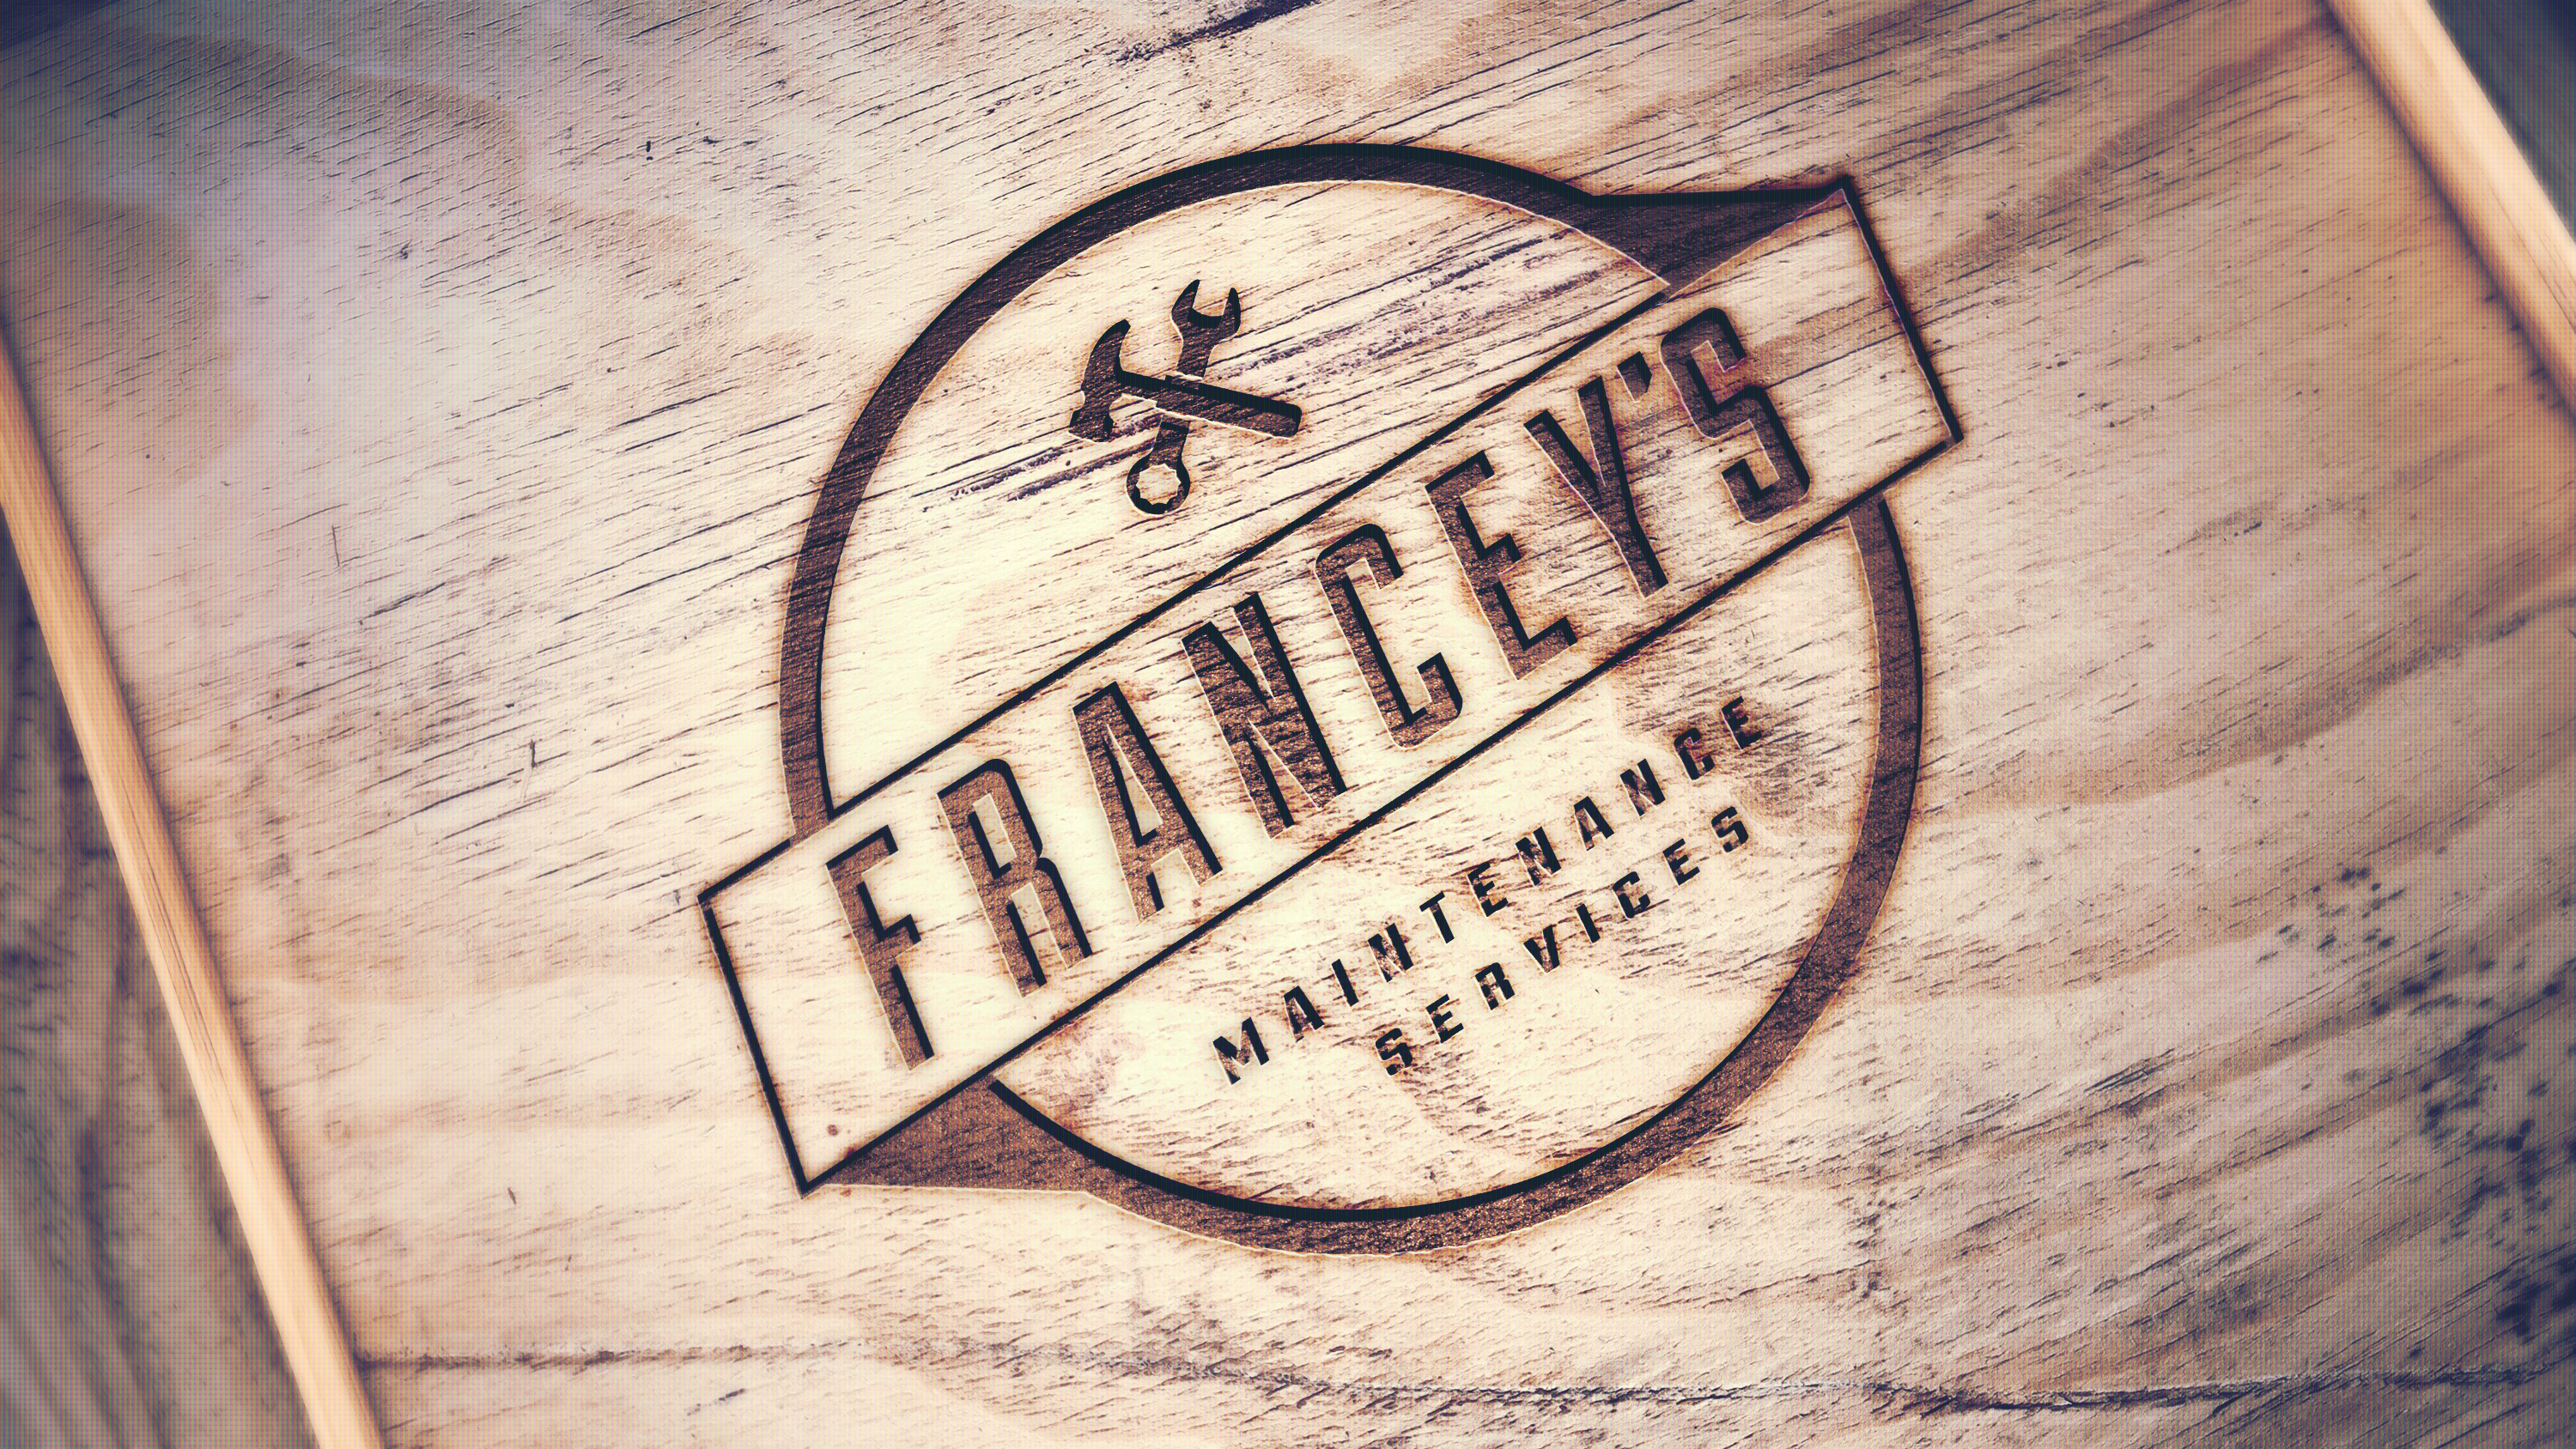 Wood burn of Francey's Maintenance services logo with hammer and spanner